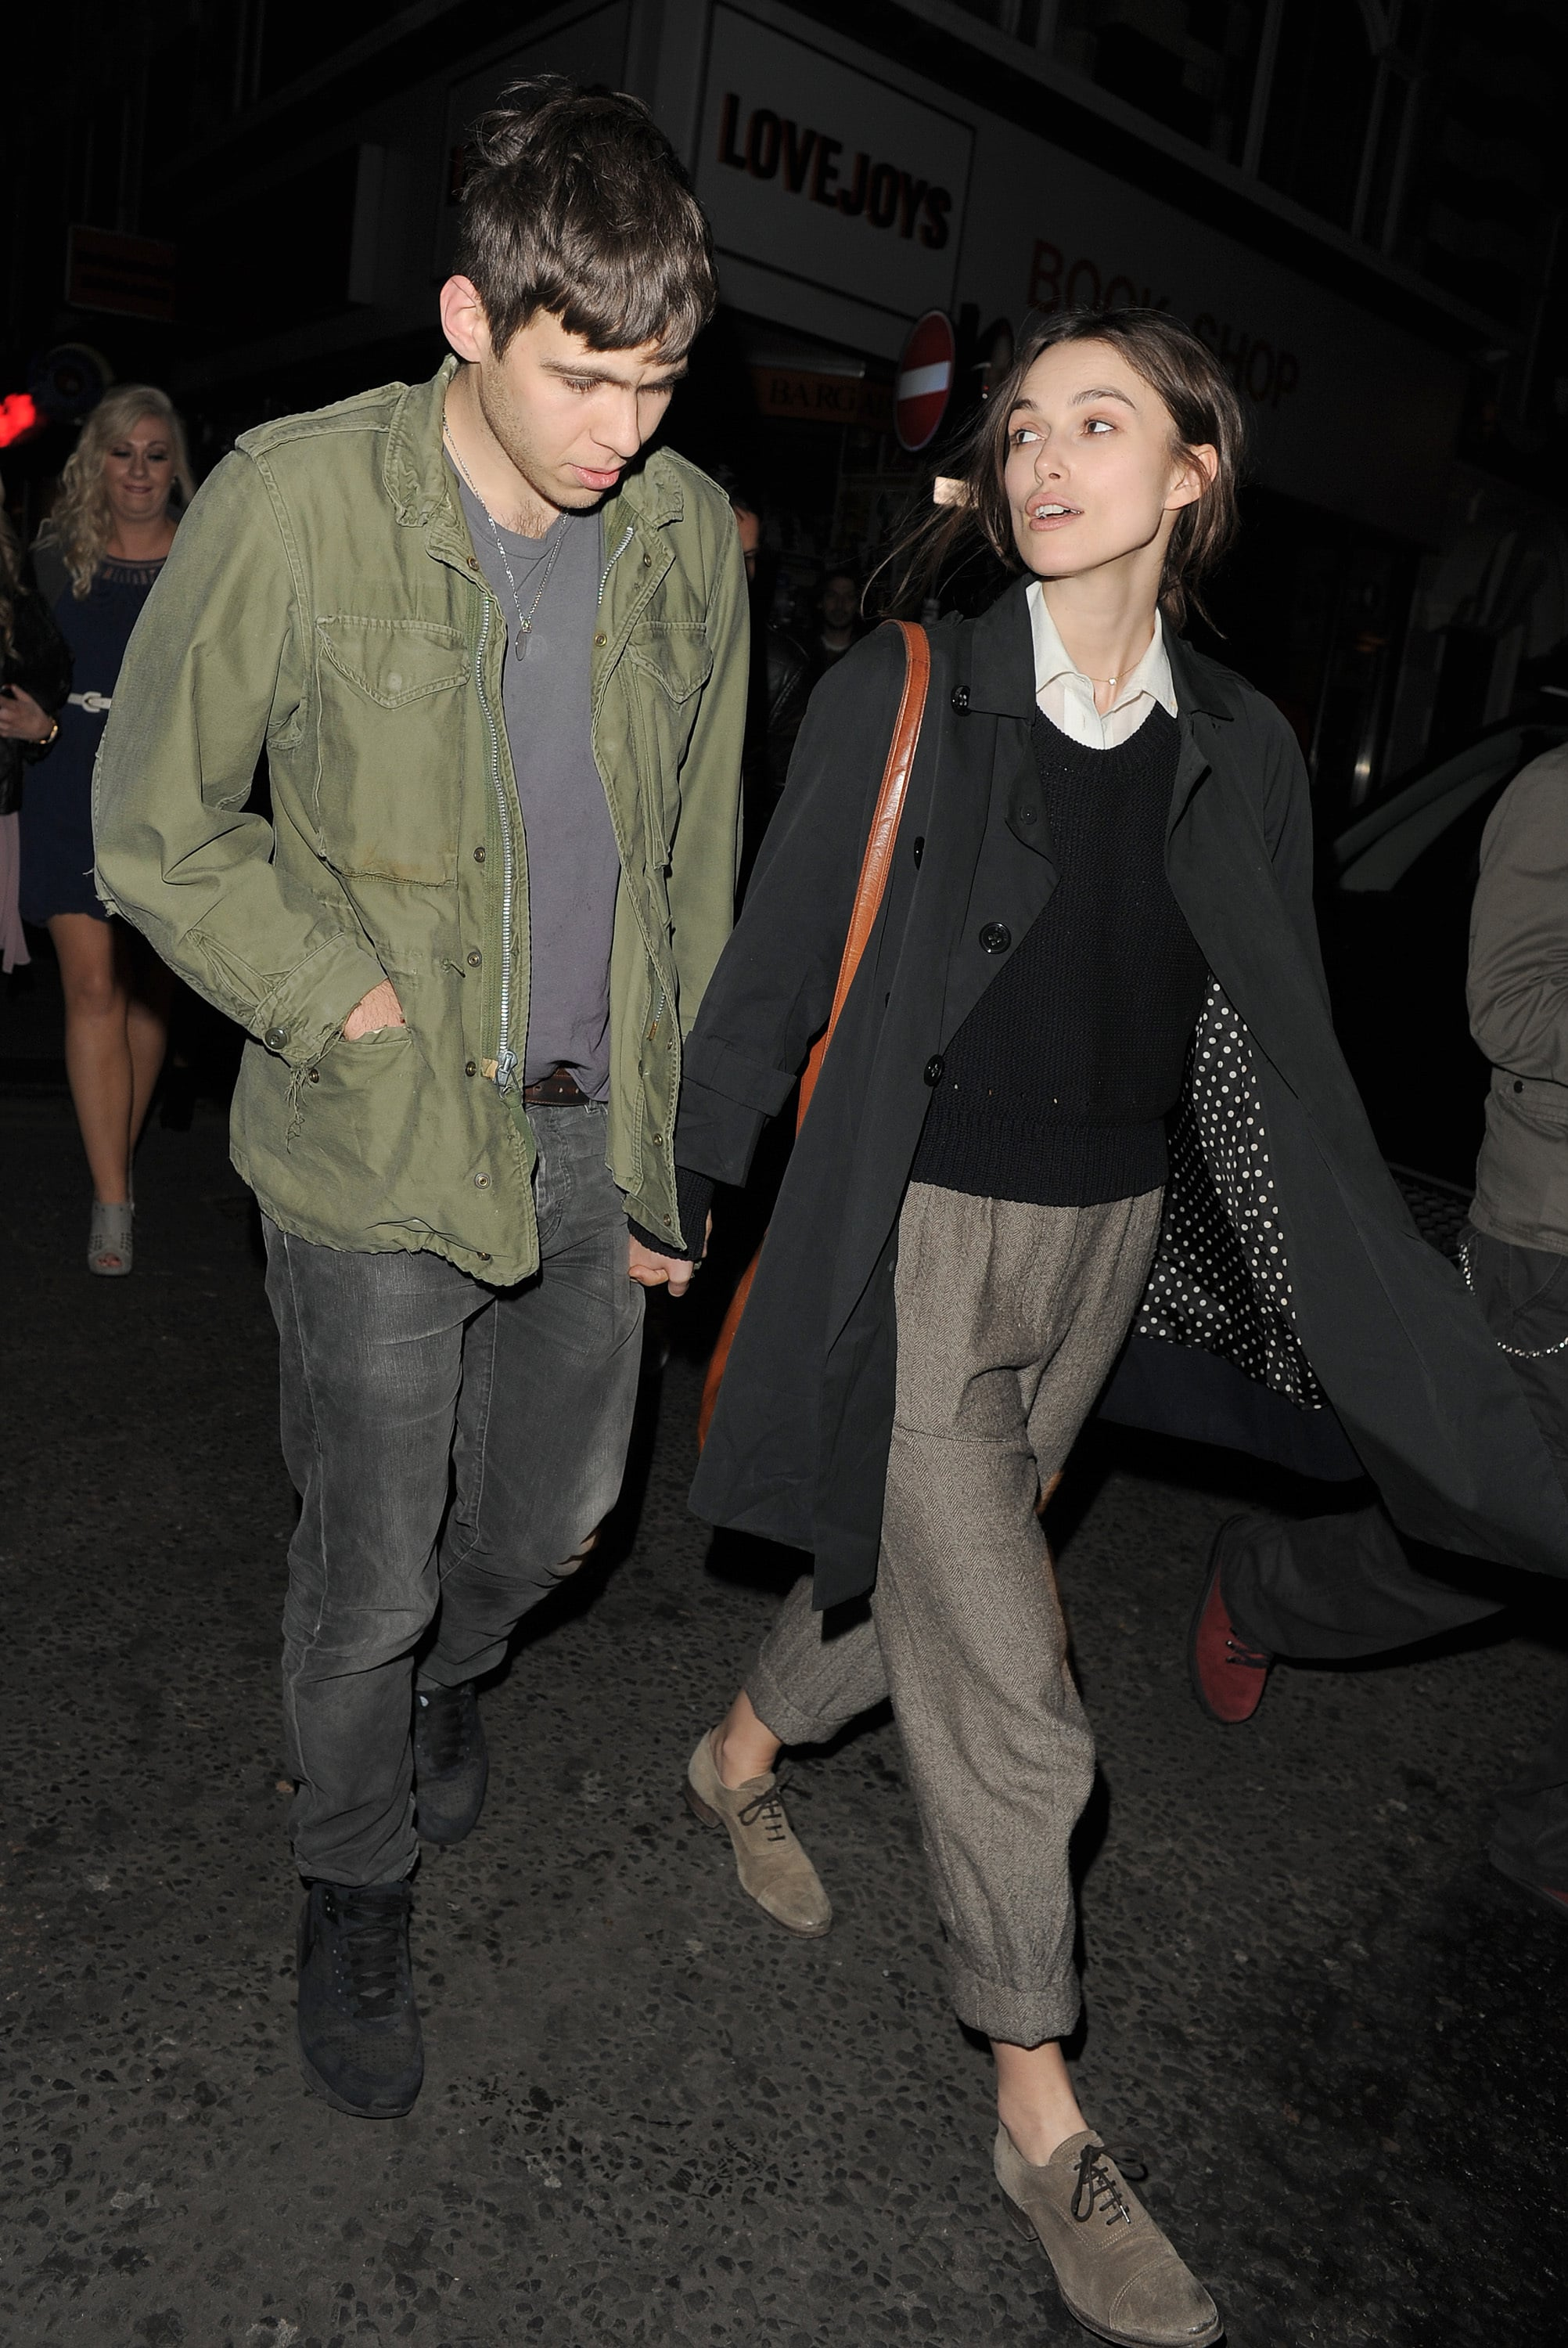 keira knightley dating list Keira knightley short bio keira christina knightley is an english actress who was born in teddington in 2010, kiera knightly dating british musician.